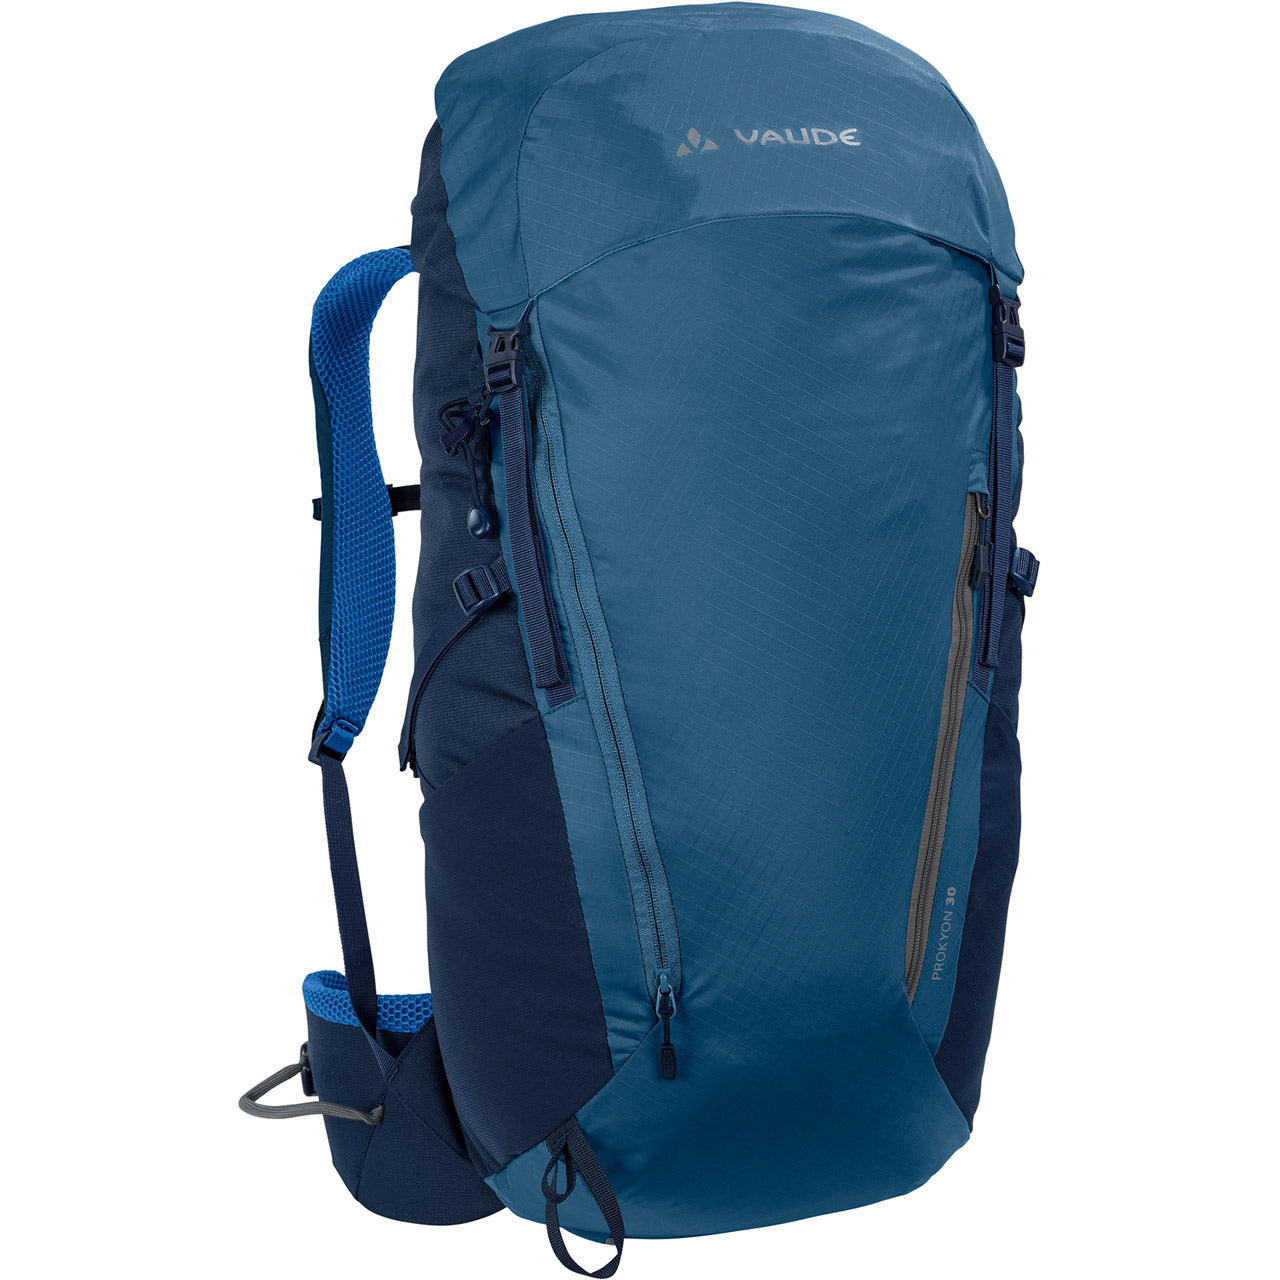 Vaude Prokyon 30-Liter Men's Mountaineering Backpack Washed Blue Front